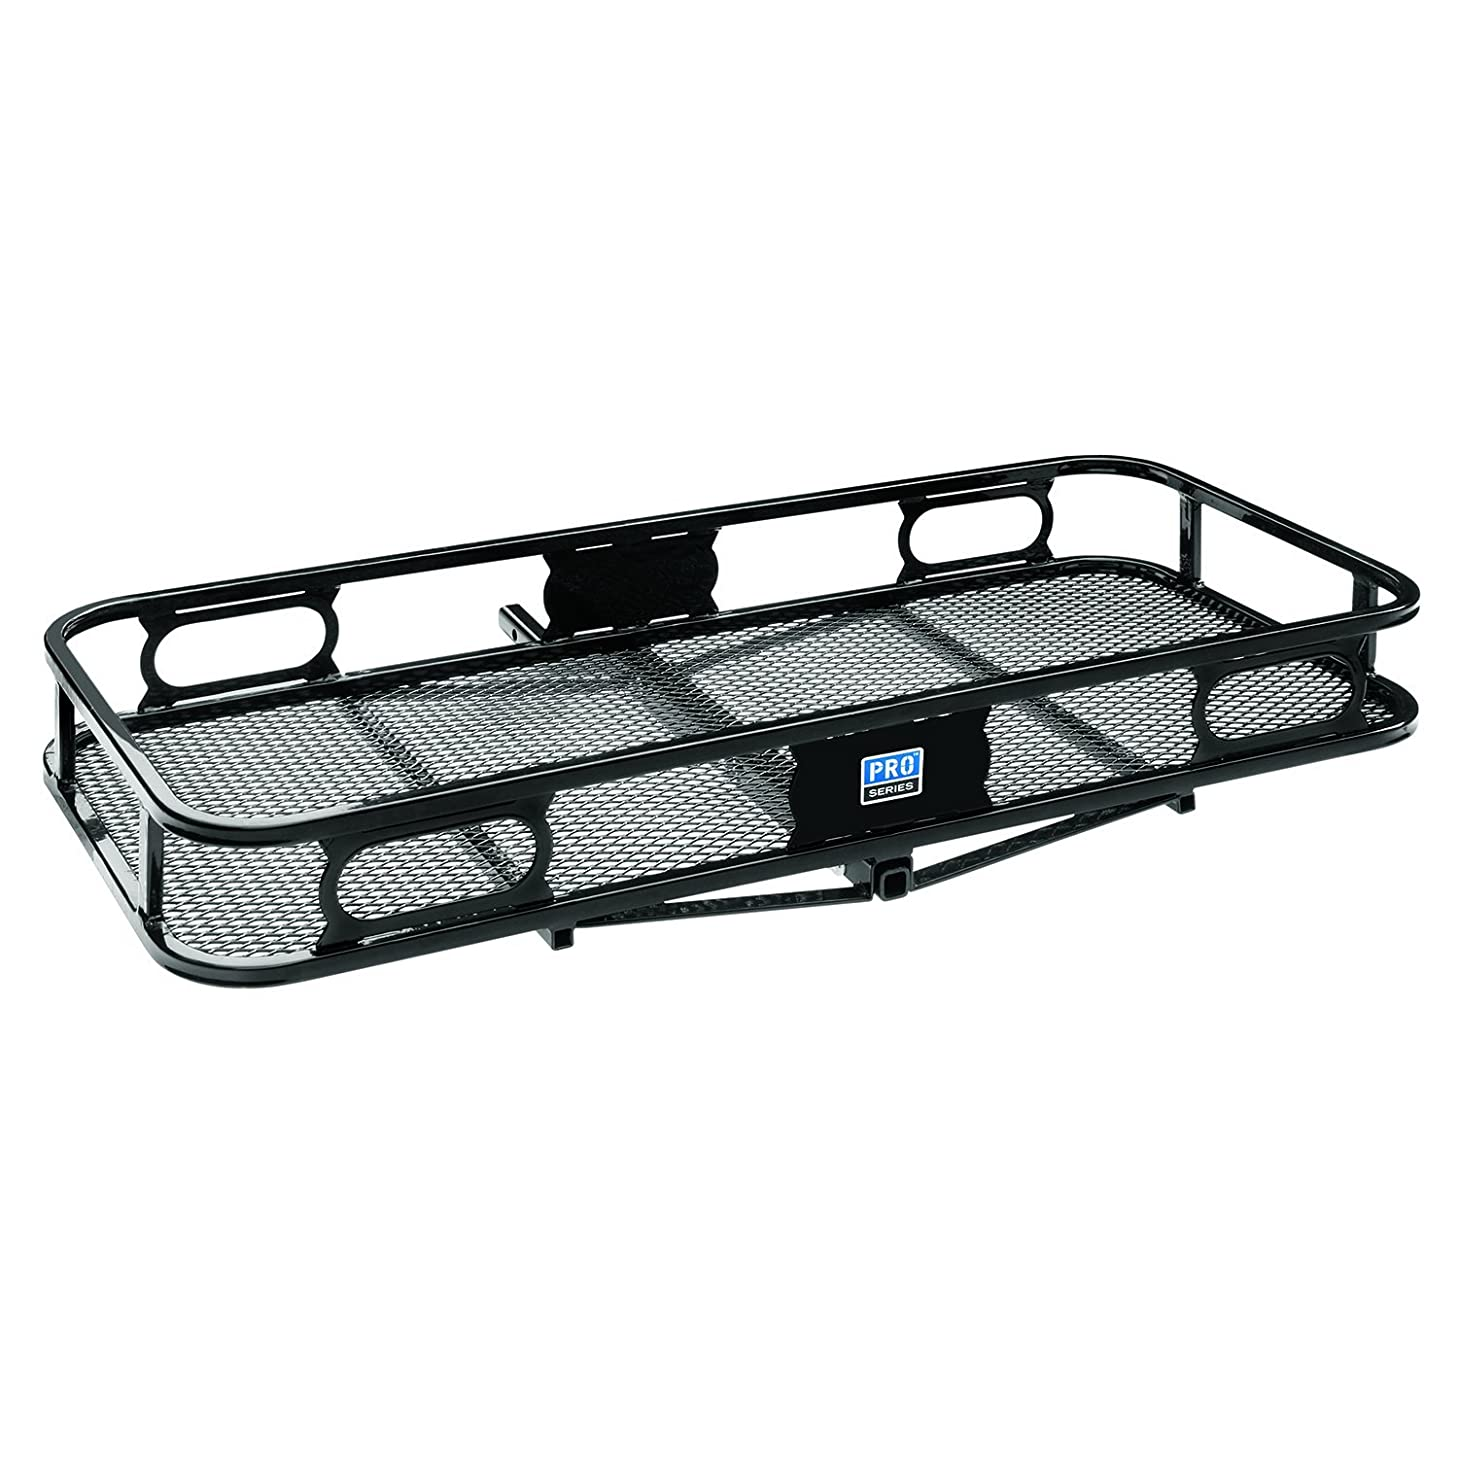 "Pro Series 63155 Rambler Hitch Cargo Carrier for 1-1/4"" Receivers"